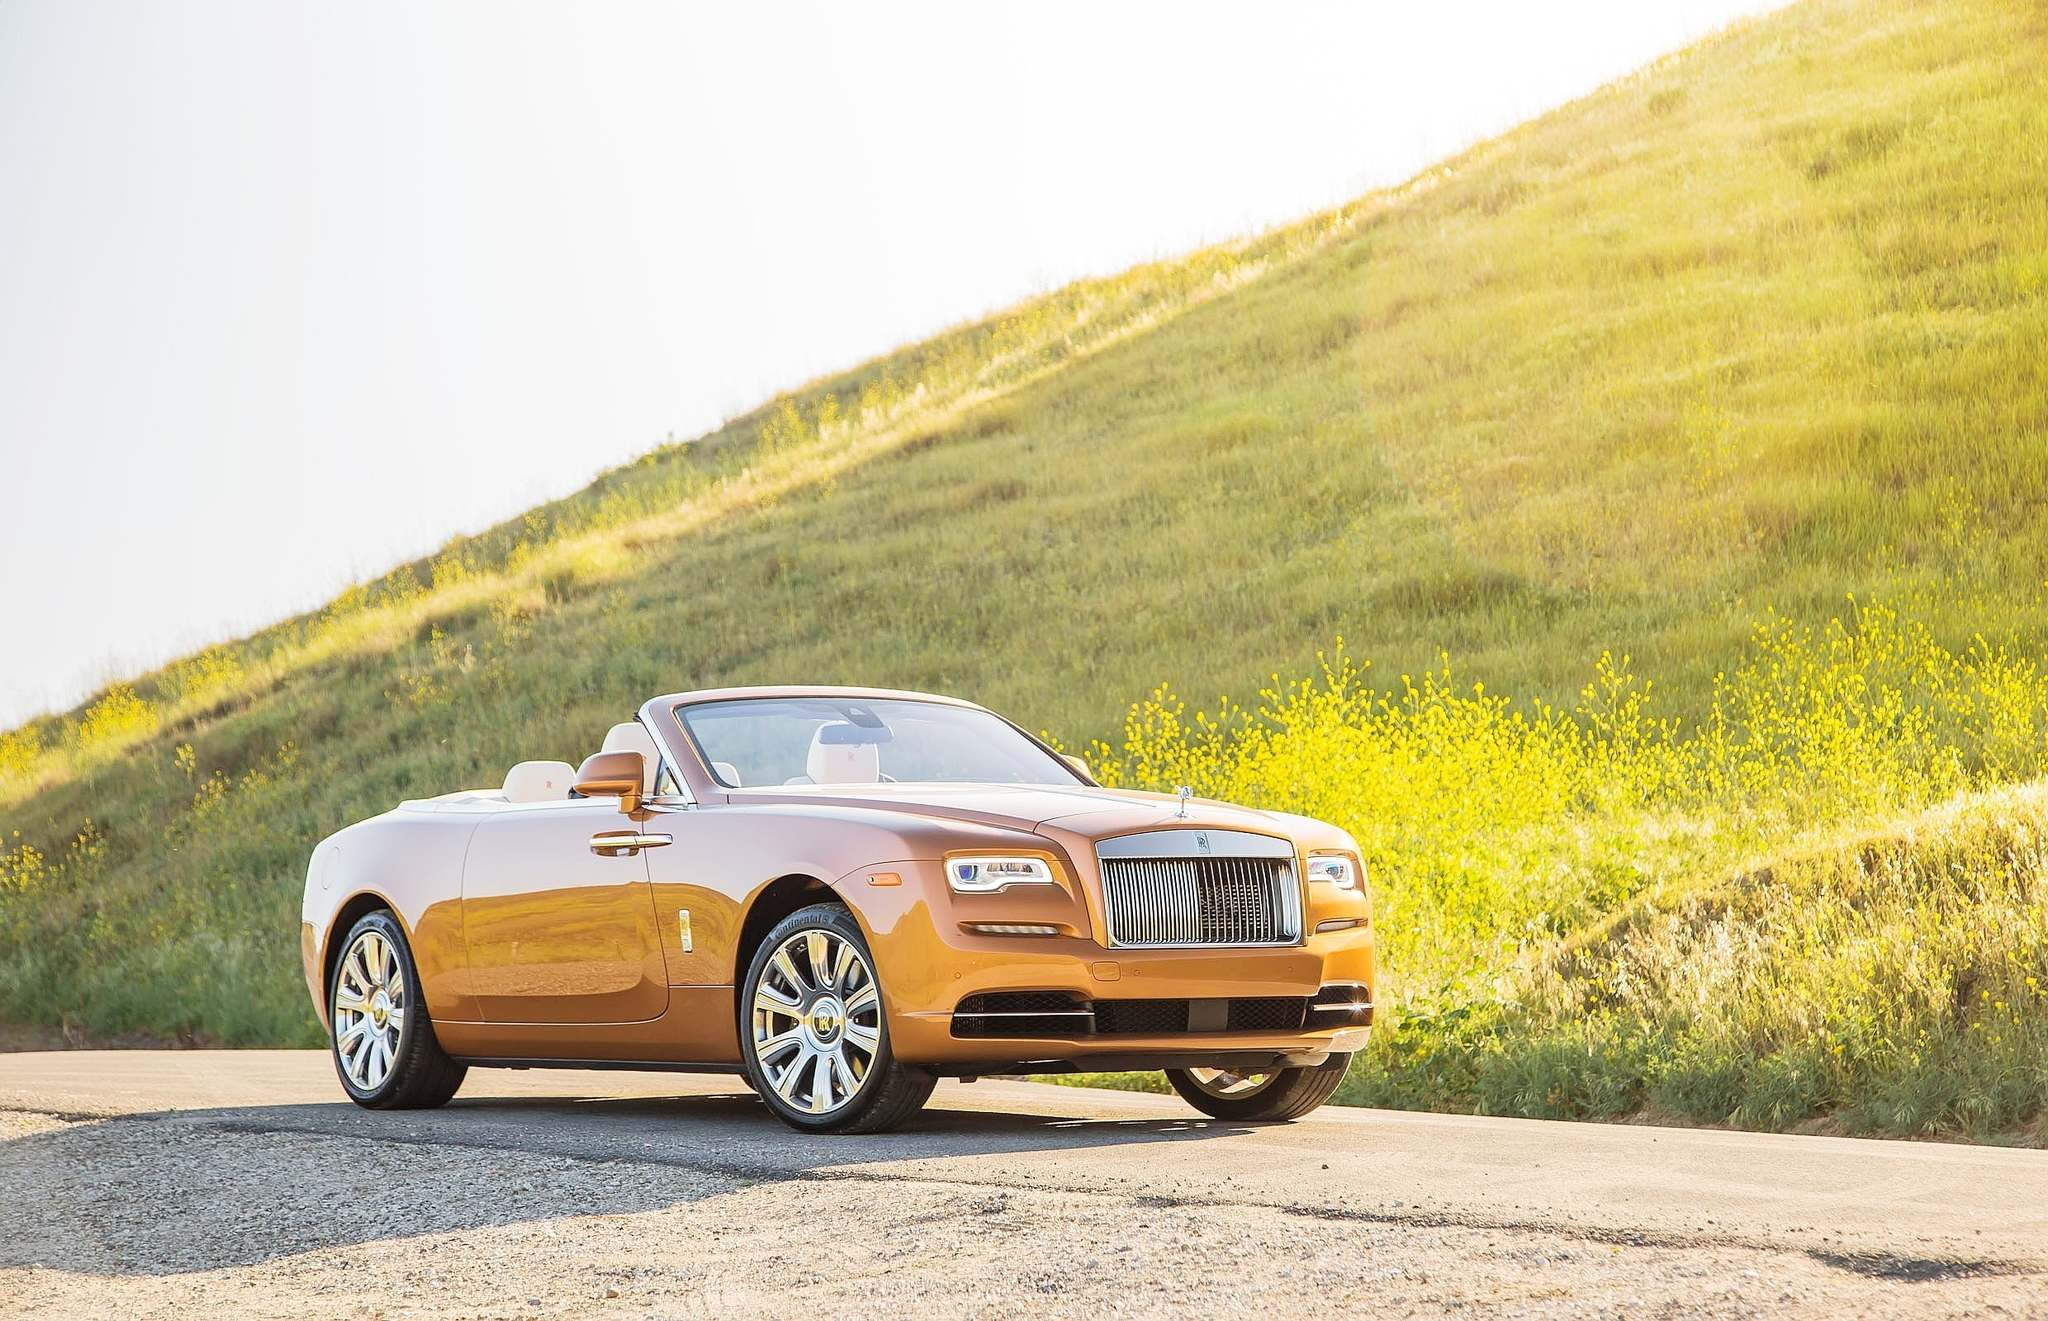 SUBMITTED PHOTO Rolls-Royce eschews the crease-lines many automakers use to add drama to their cars silhouettes in favour of a nearly organic shape, and a sporty-looking luxury car.